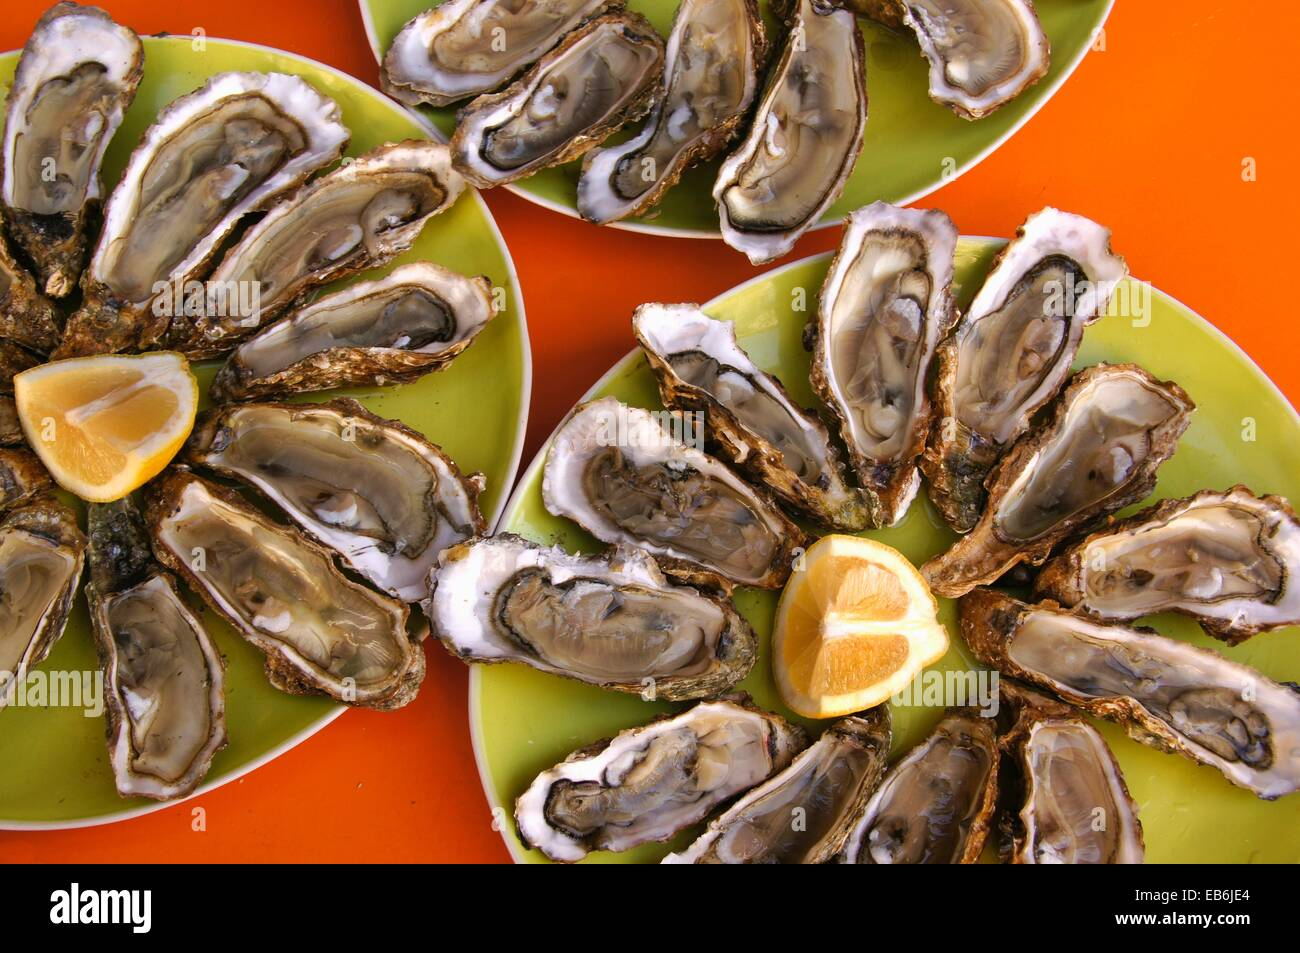 France aquitaine gironde food huitres oysters from for Aquitaine cuisine